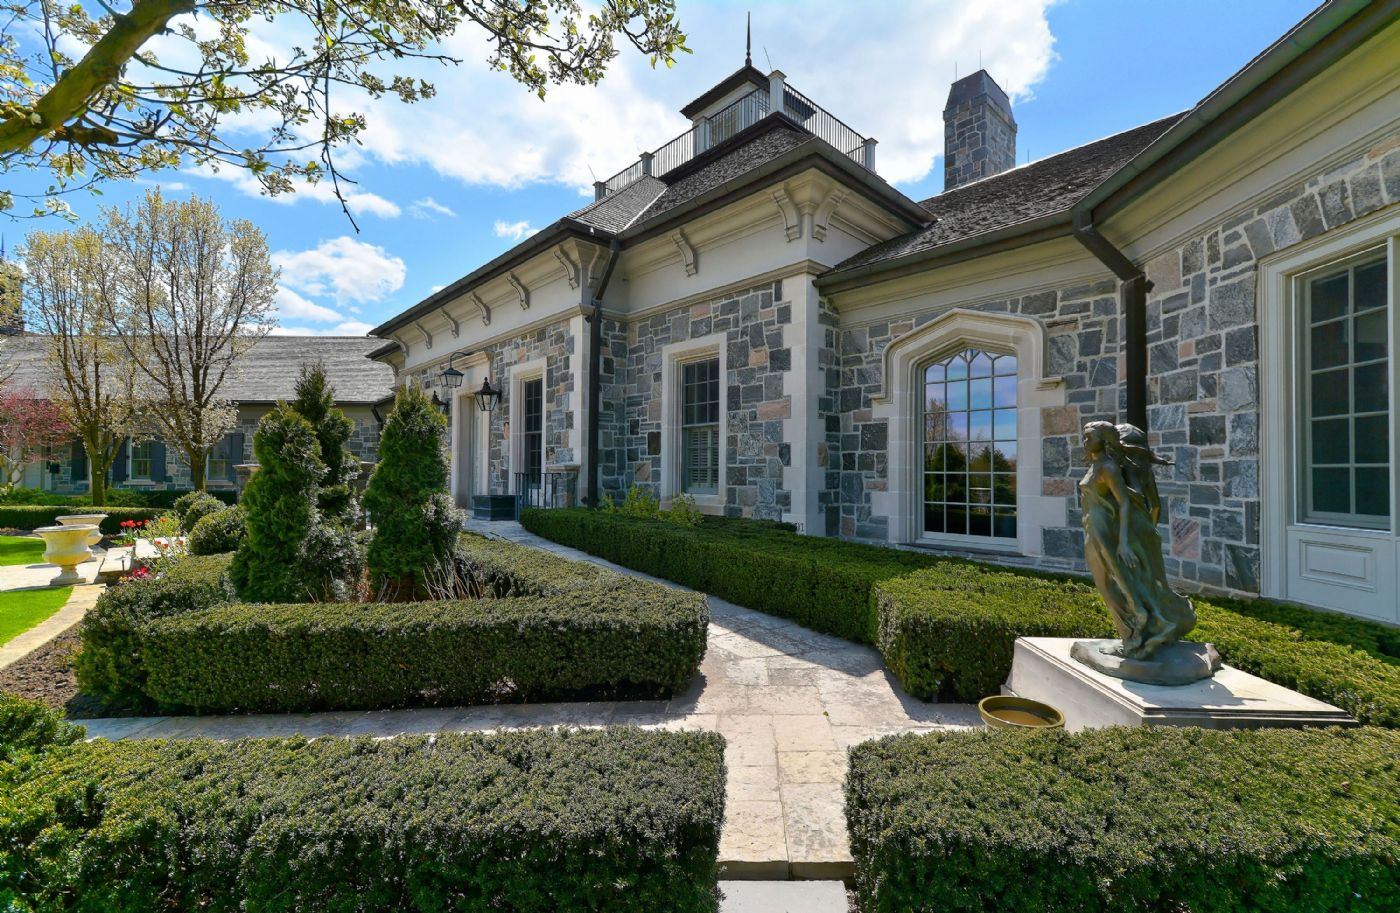 Luxury real estate and Country Homes for sale including horse farms and property in the Caledon and King City areas near Toronto